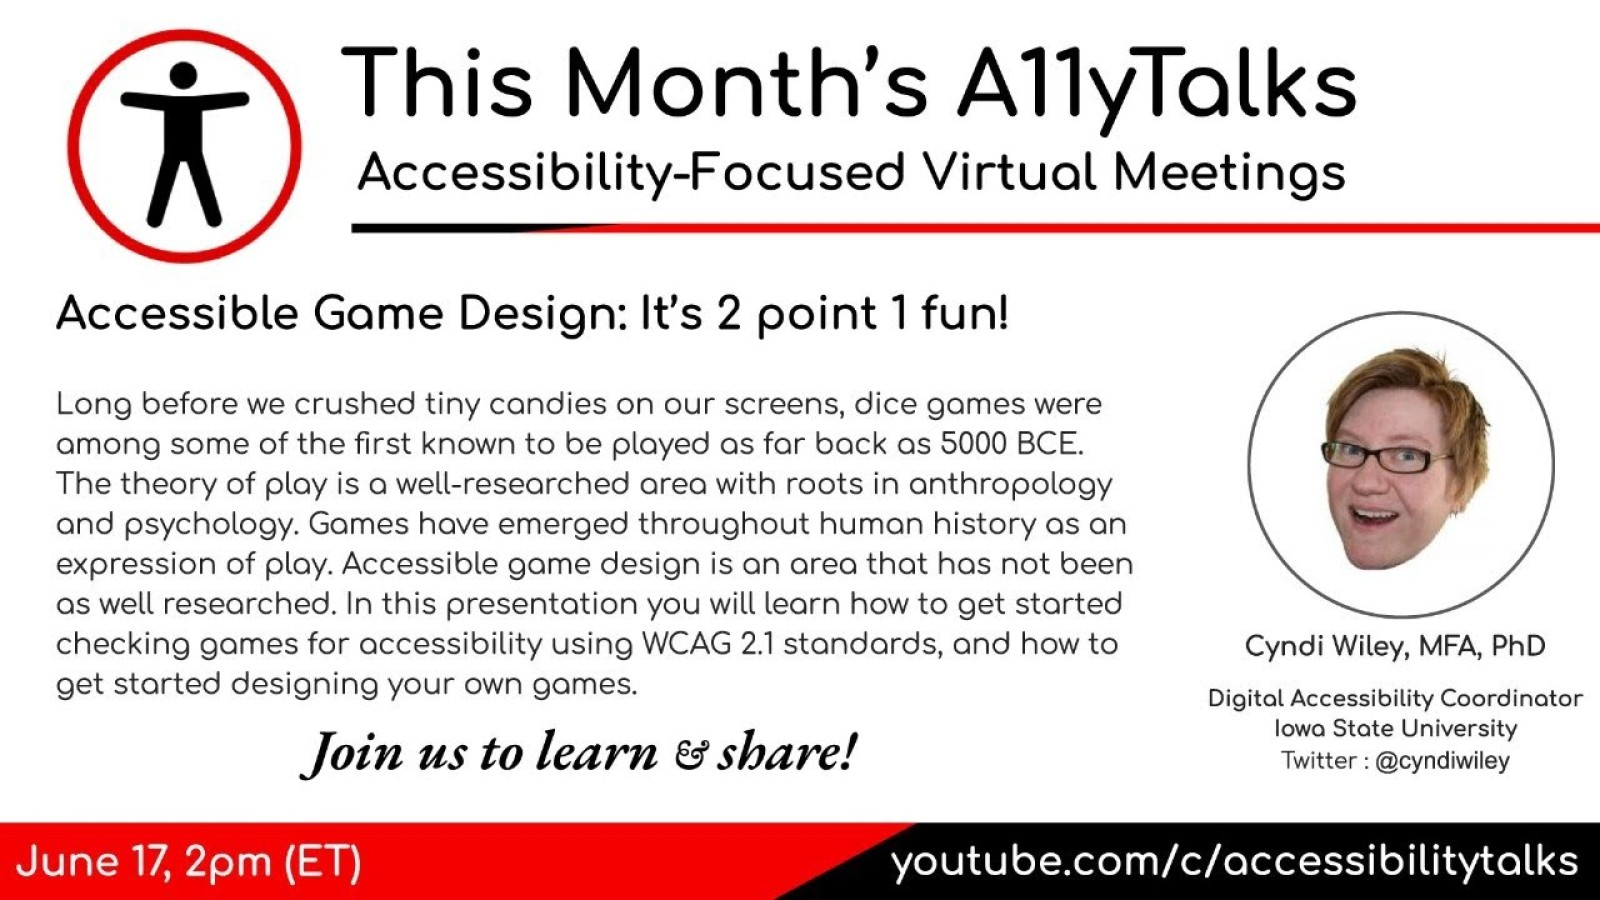 Accessible Game Design: 2 point 1 fun!